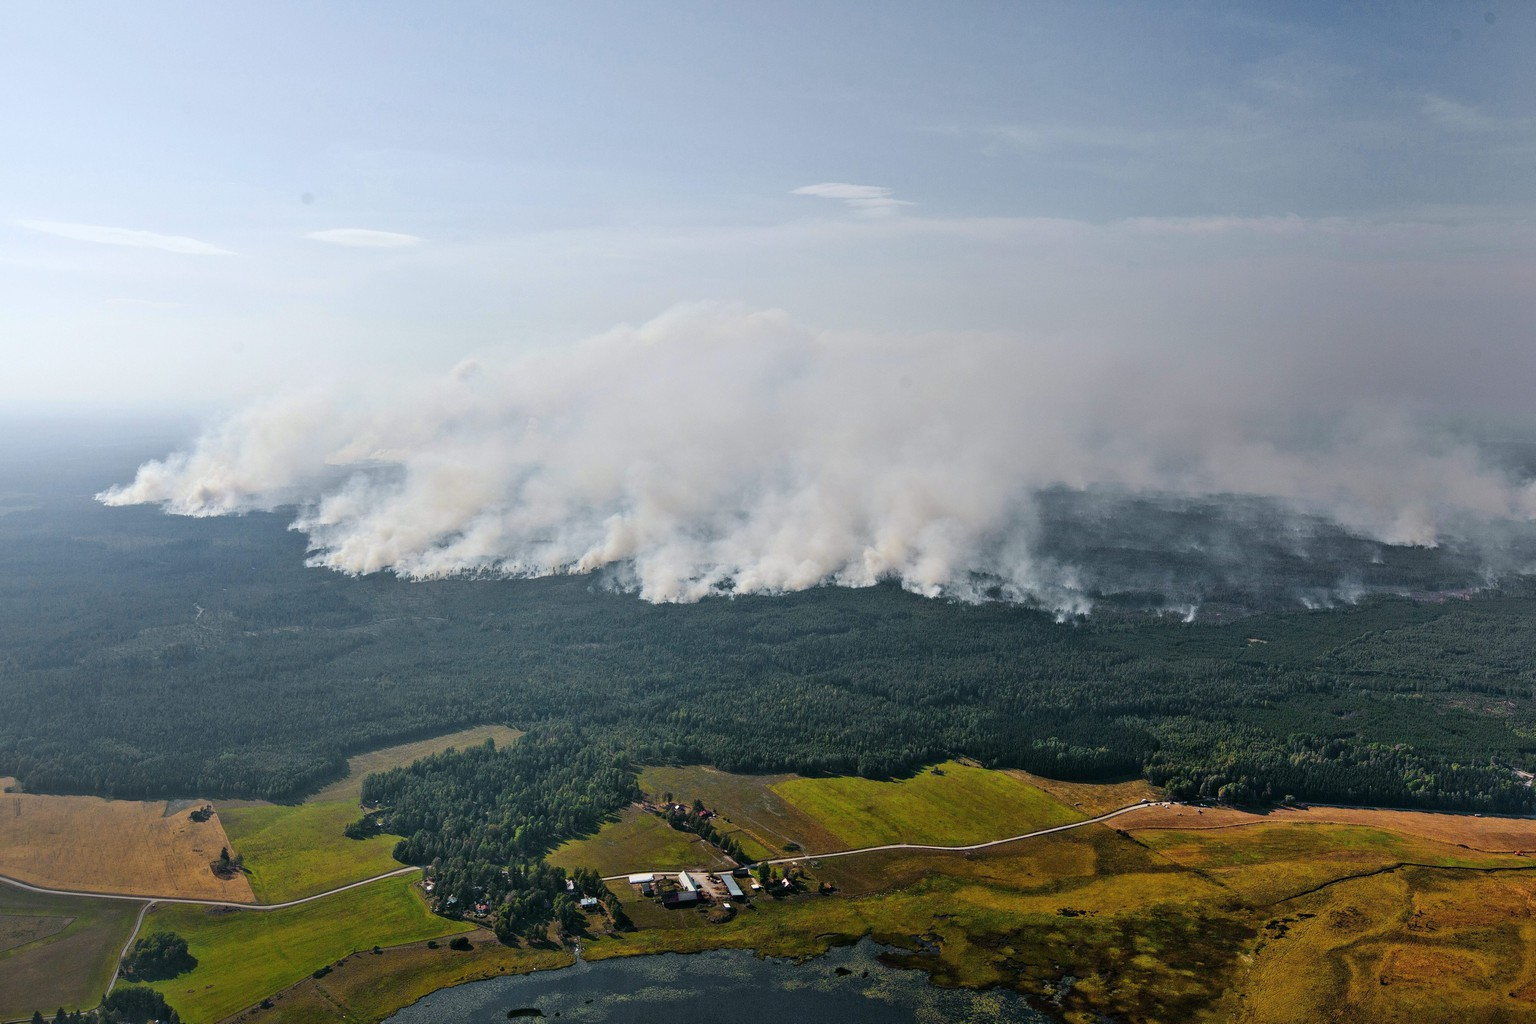 epa04340806 A photograph made available on 04 August 2014 shows smoke billowing as the wildfire front nears the village of Rorbo near Sala, Sweden, 03 August 2014. The fire, covering thousands of hectares, is in its fifth day and firefighters believe it will burn for weeks or even months. It is classified as the worst forest fire in Sweden's modern history.  EPA/JOCKE BERGLUND SWEDEN OUT